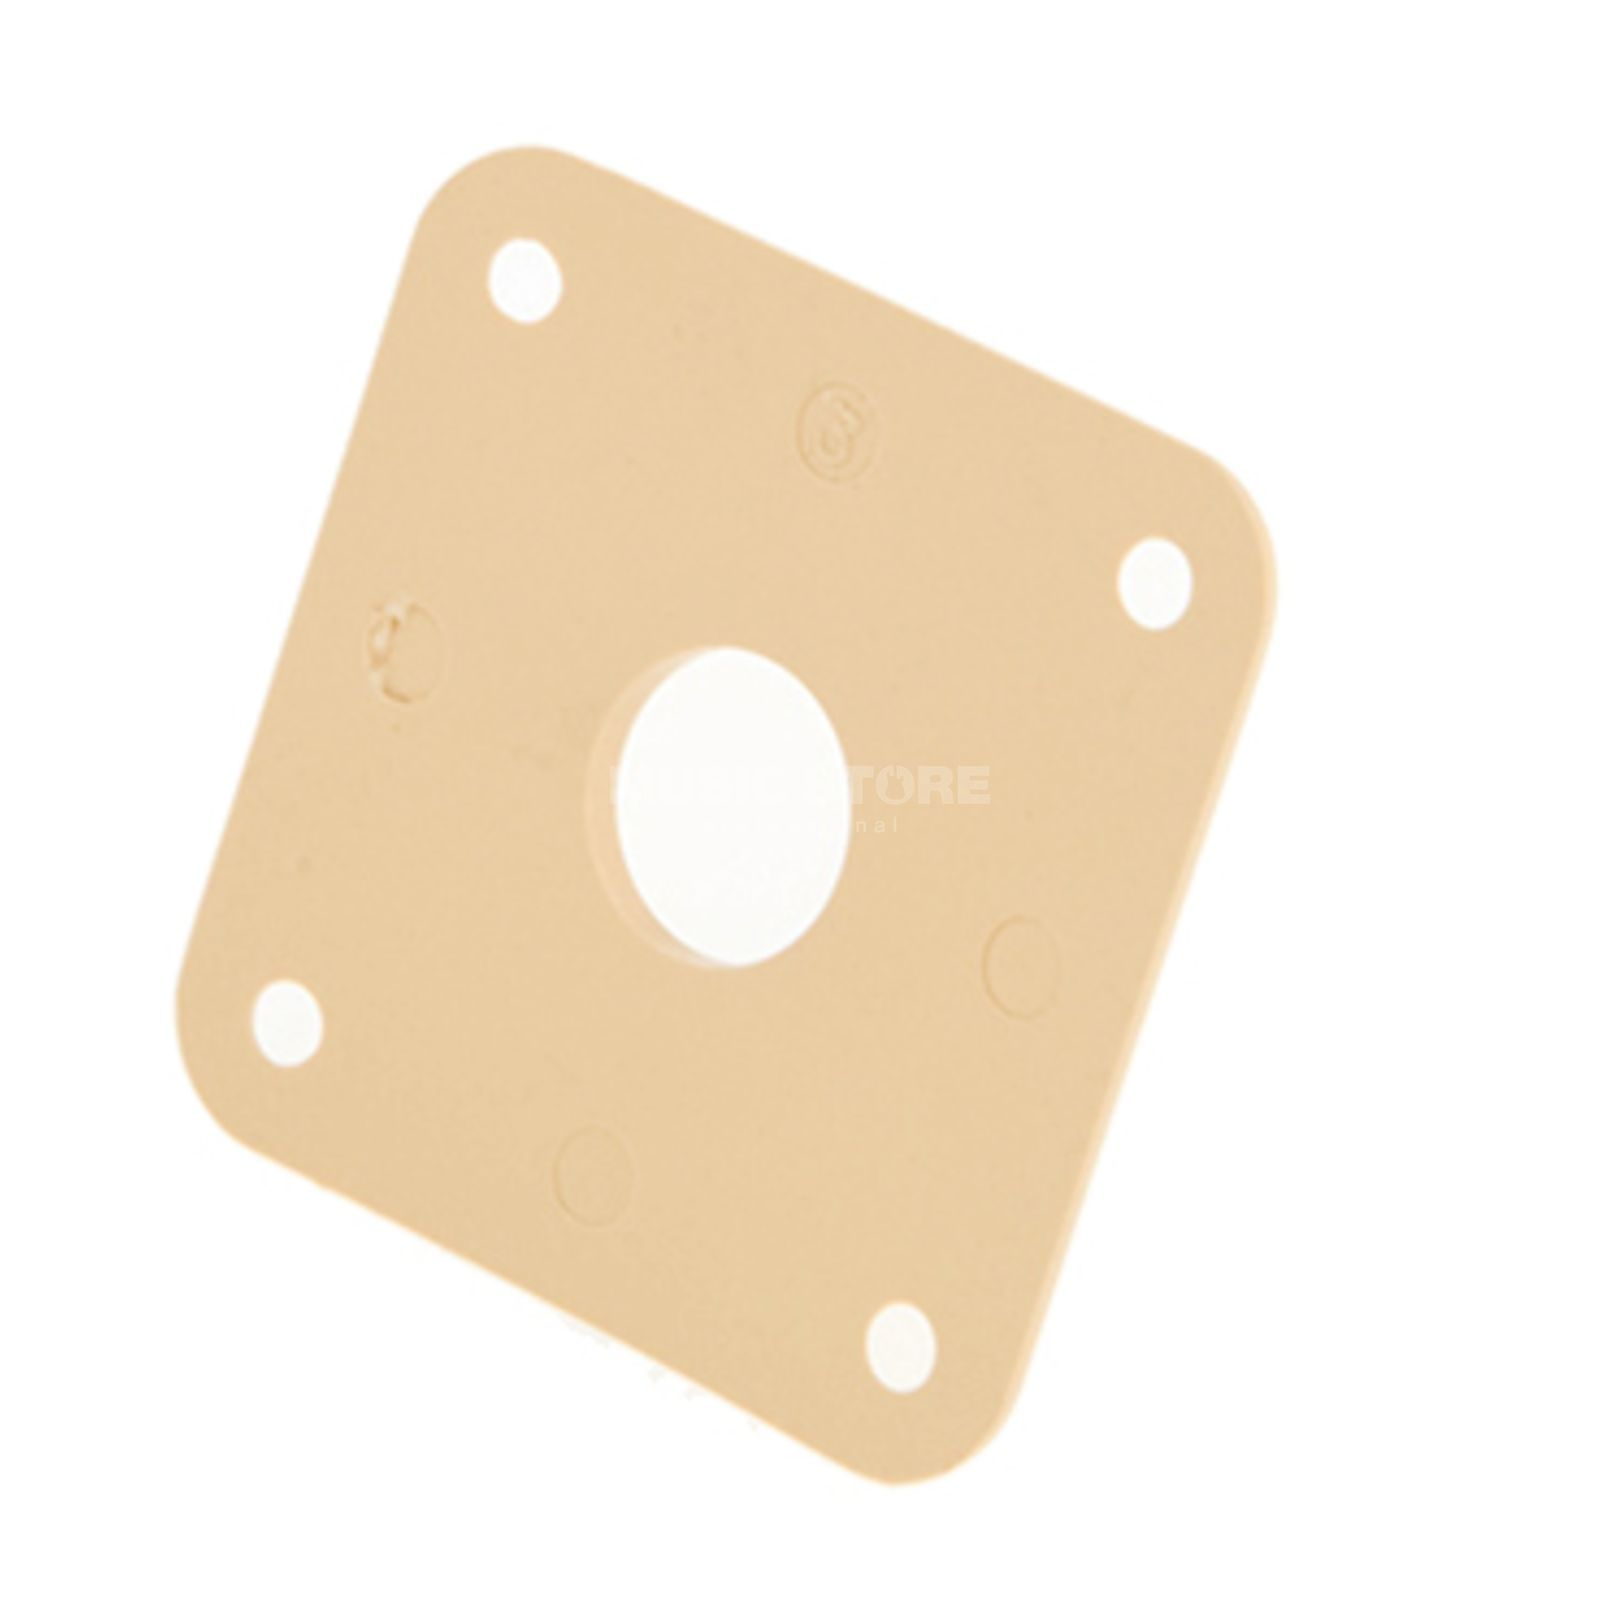 Gibson PRJP-030 Jack Plate CR Plastic Creme Product Image